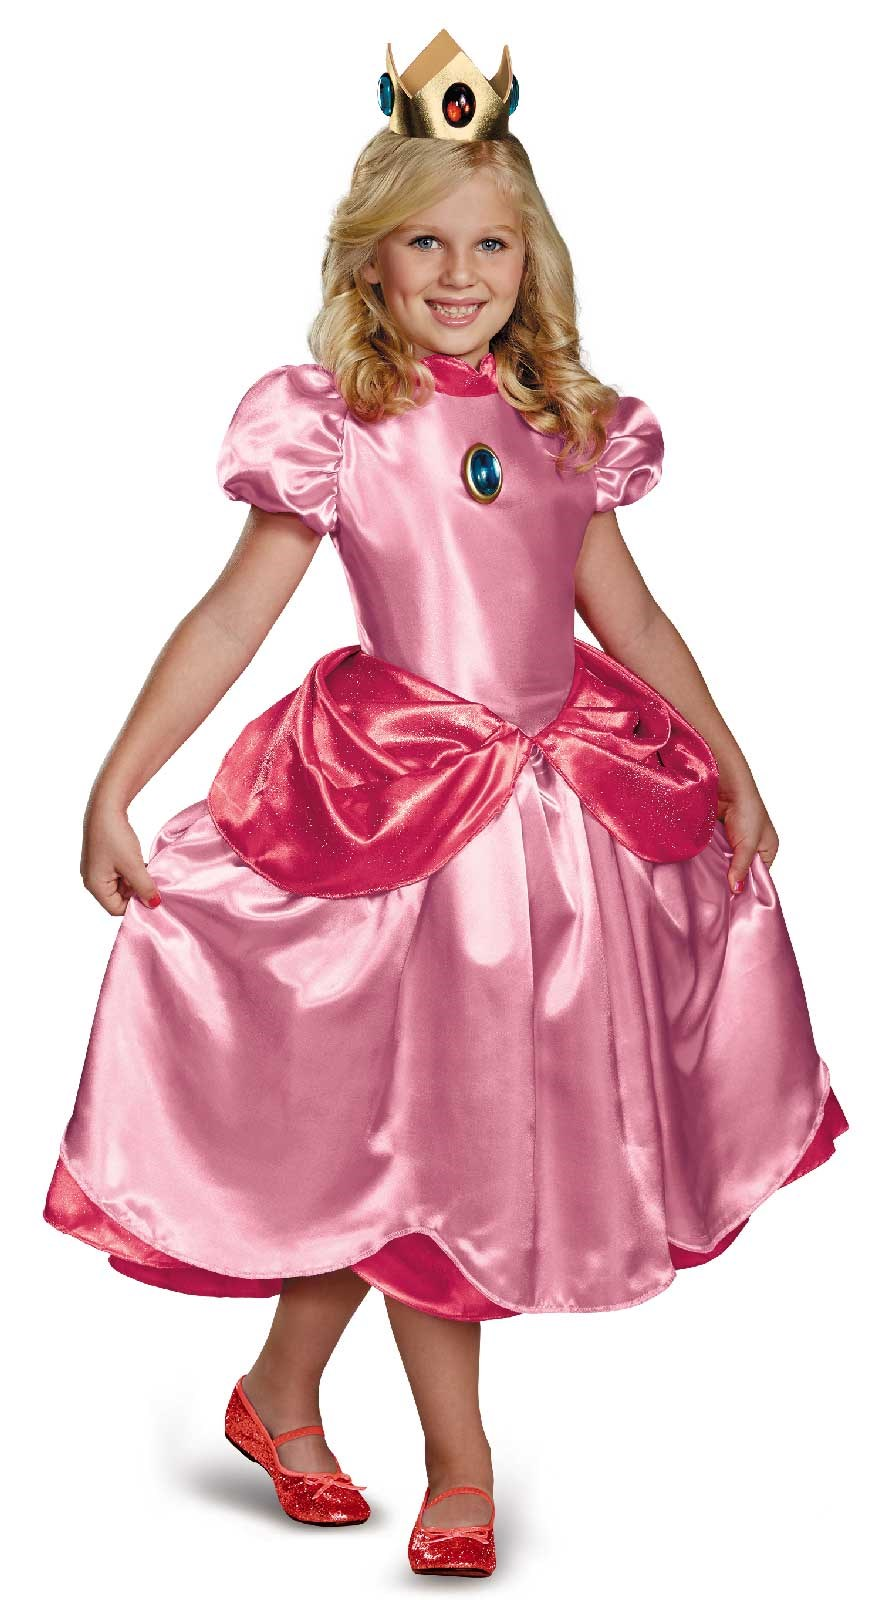 Super Mario Brothers Deluxe Princess Peach Dress Costume Large (10-12)